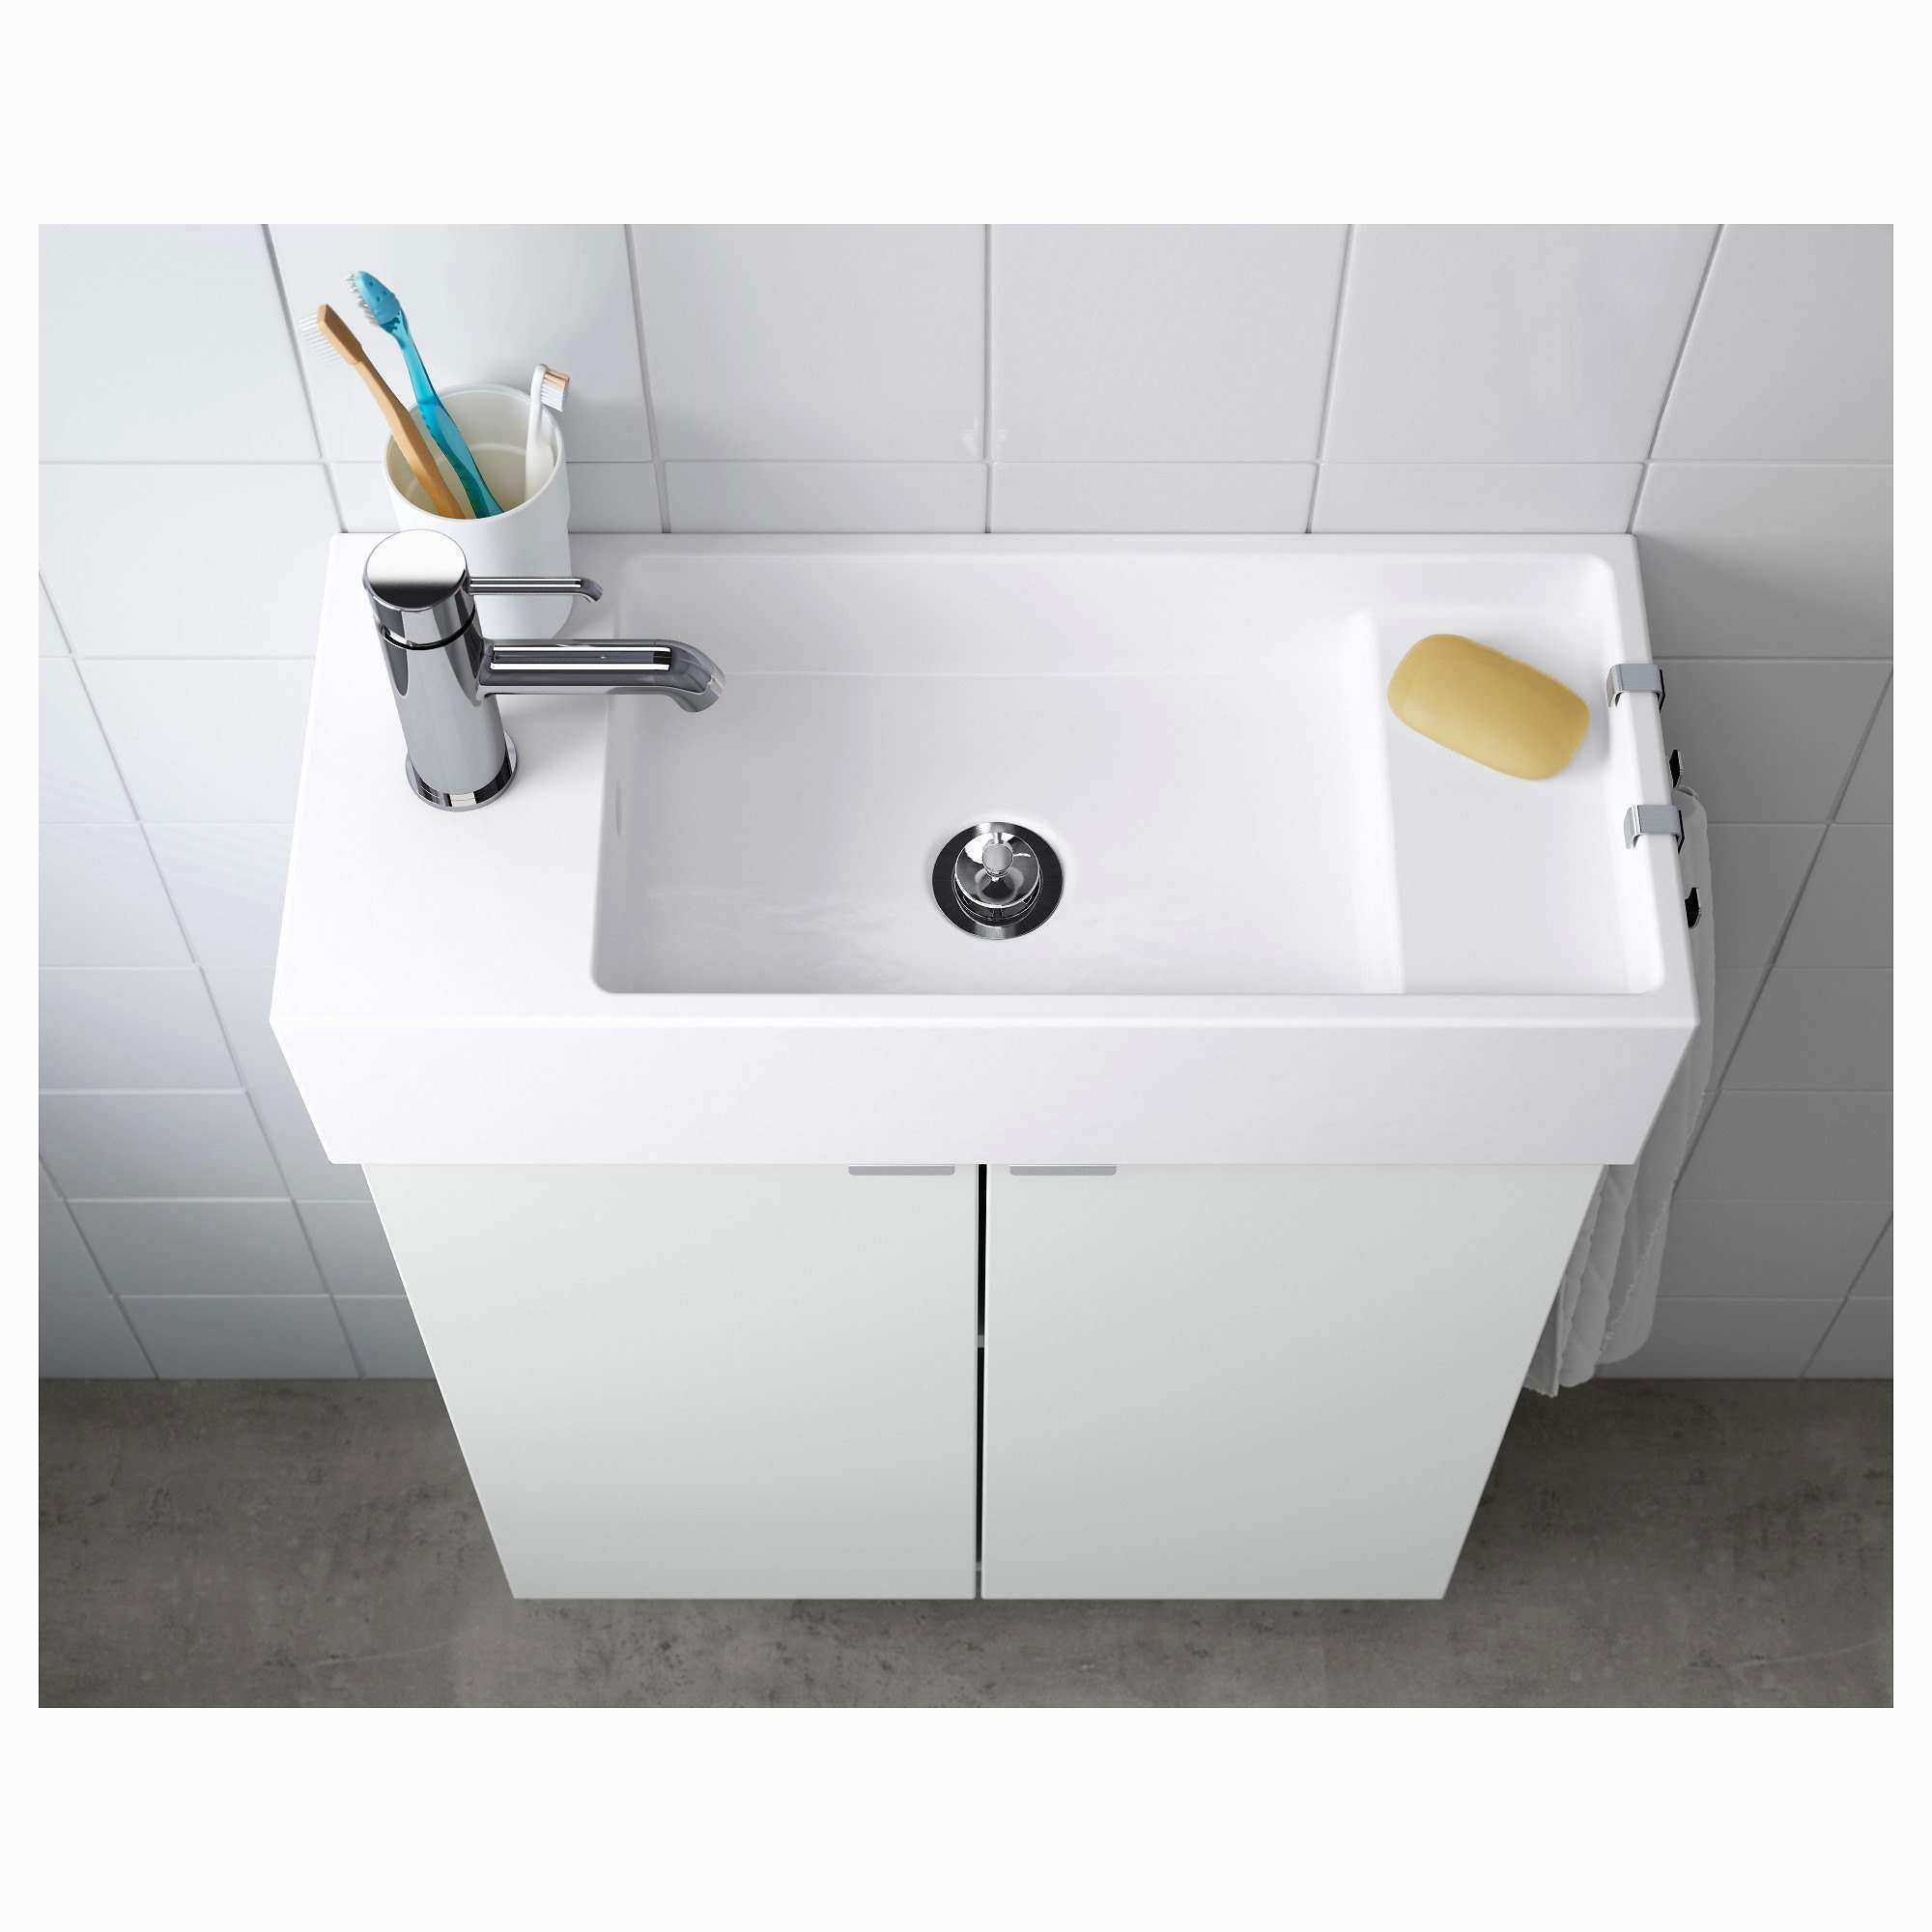 Wall Mounted Rectangular Sink Unique Pe S5h Sink Ikea Small I 0d